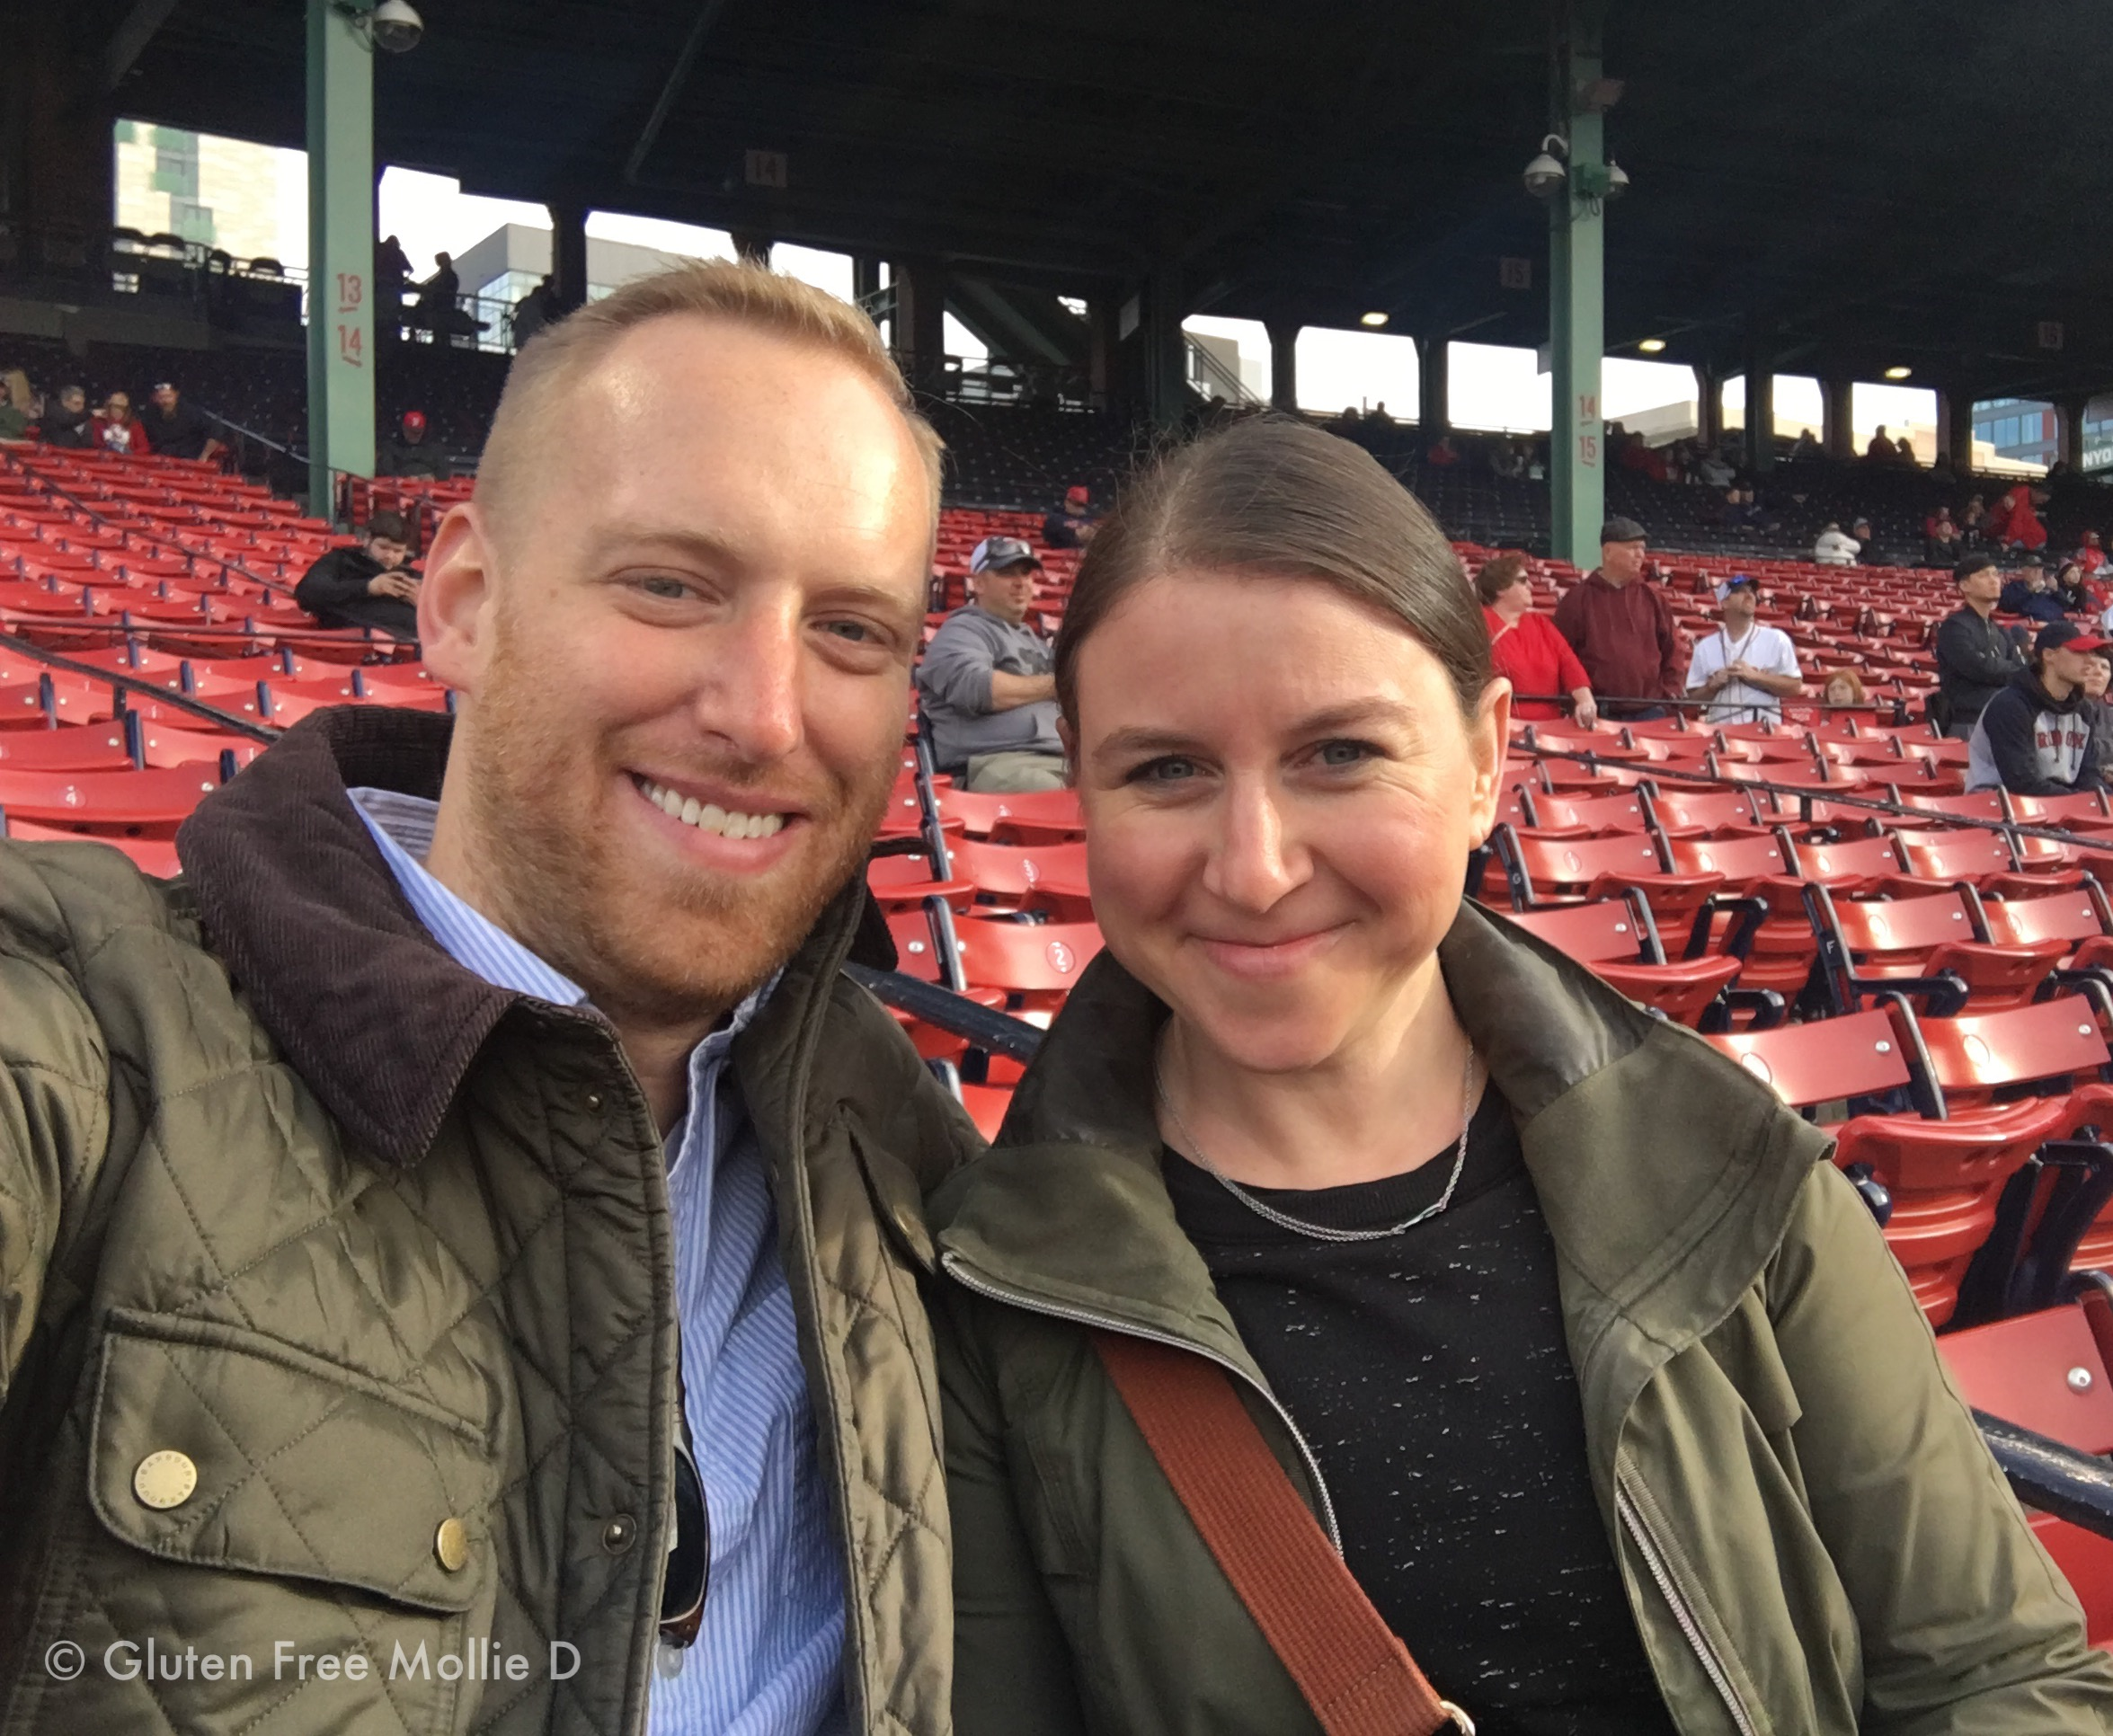 At Fenway, before we were cold and they were losing.